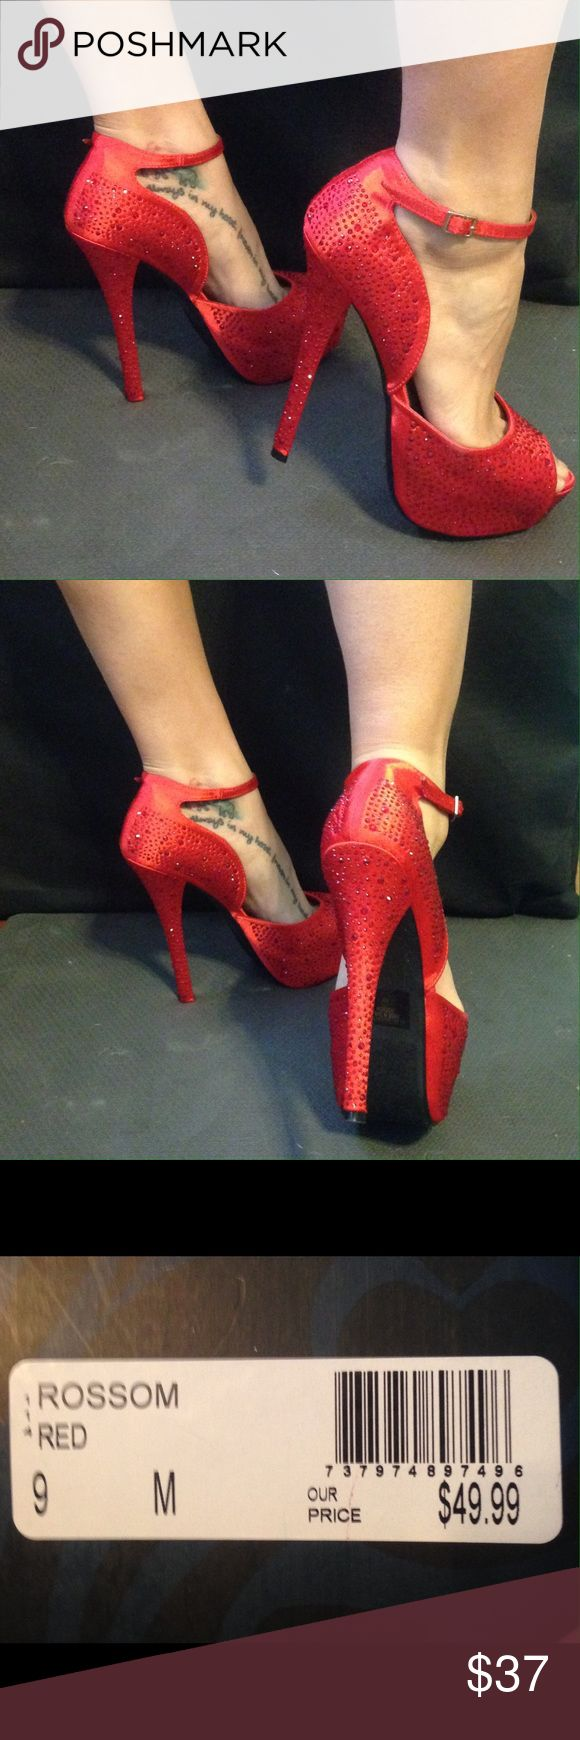 """Y-not? Red Stiletto Heels Brand: Y-not? Size:9M     Euro:39 Style: Rossum Color: Red Material: Satin with rhinestones Original price:$49.99  Rhinestones all over 1.5"""" platform 4.5"""" heel   Only worn once Y-not? Shoes Heels"""